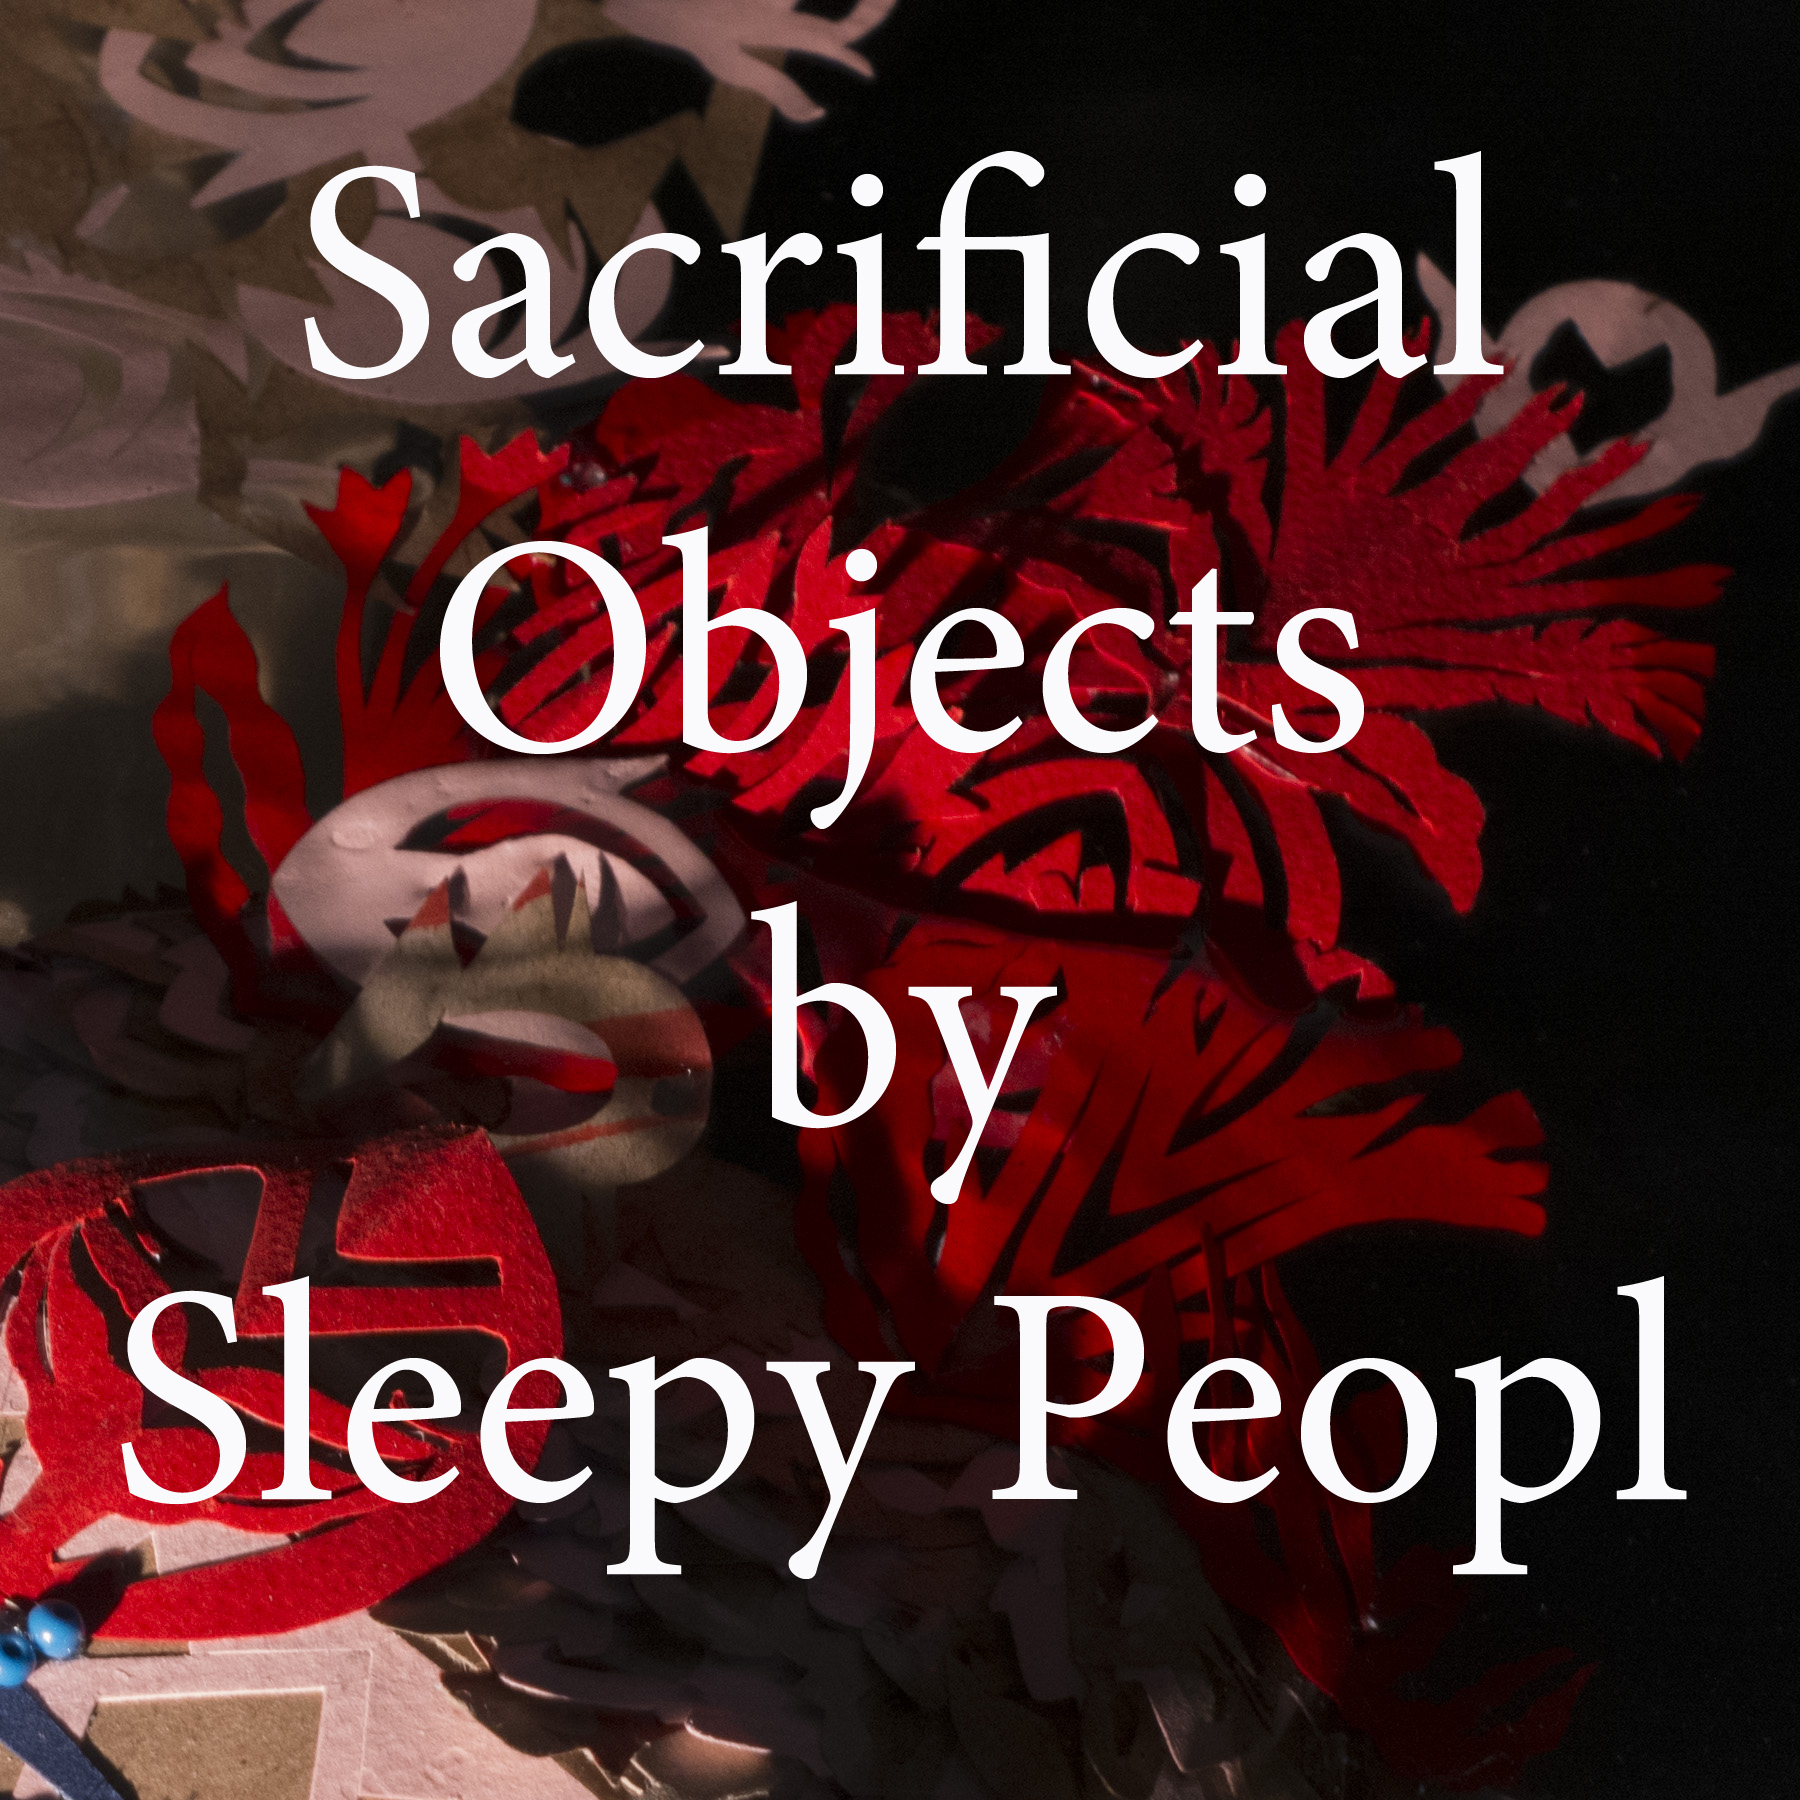 sacrificial objects by sleepy peopl 2.jpg